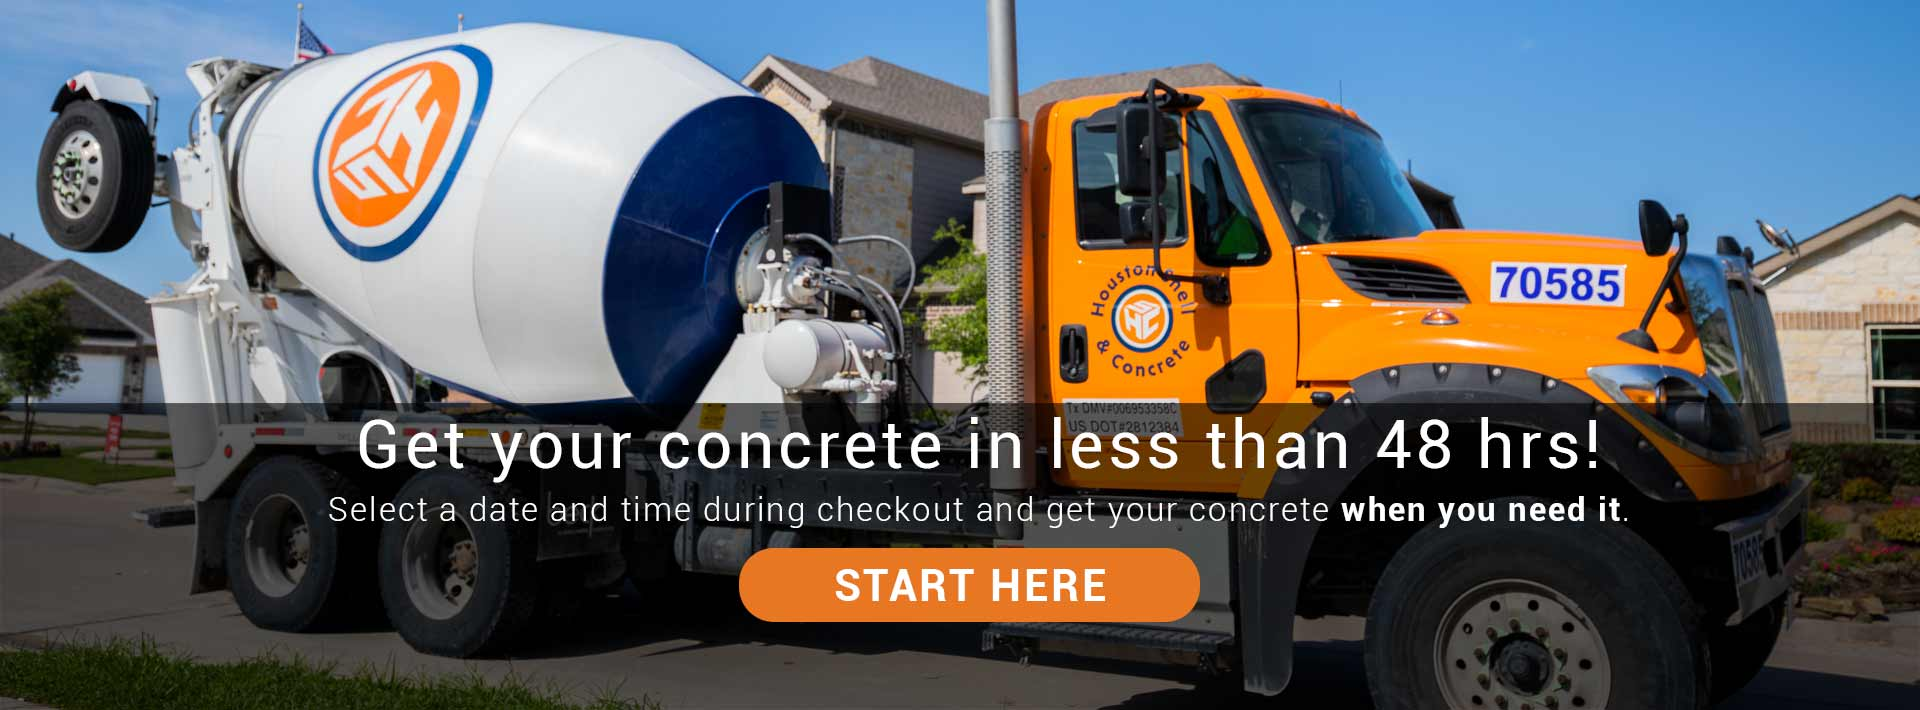 Get your concrete in less than 48 hrs